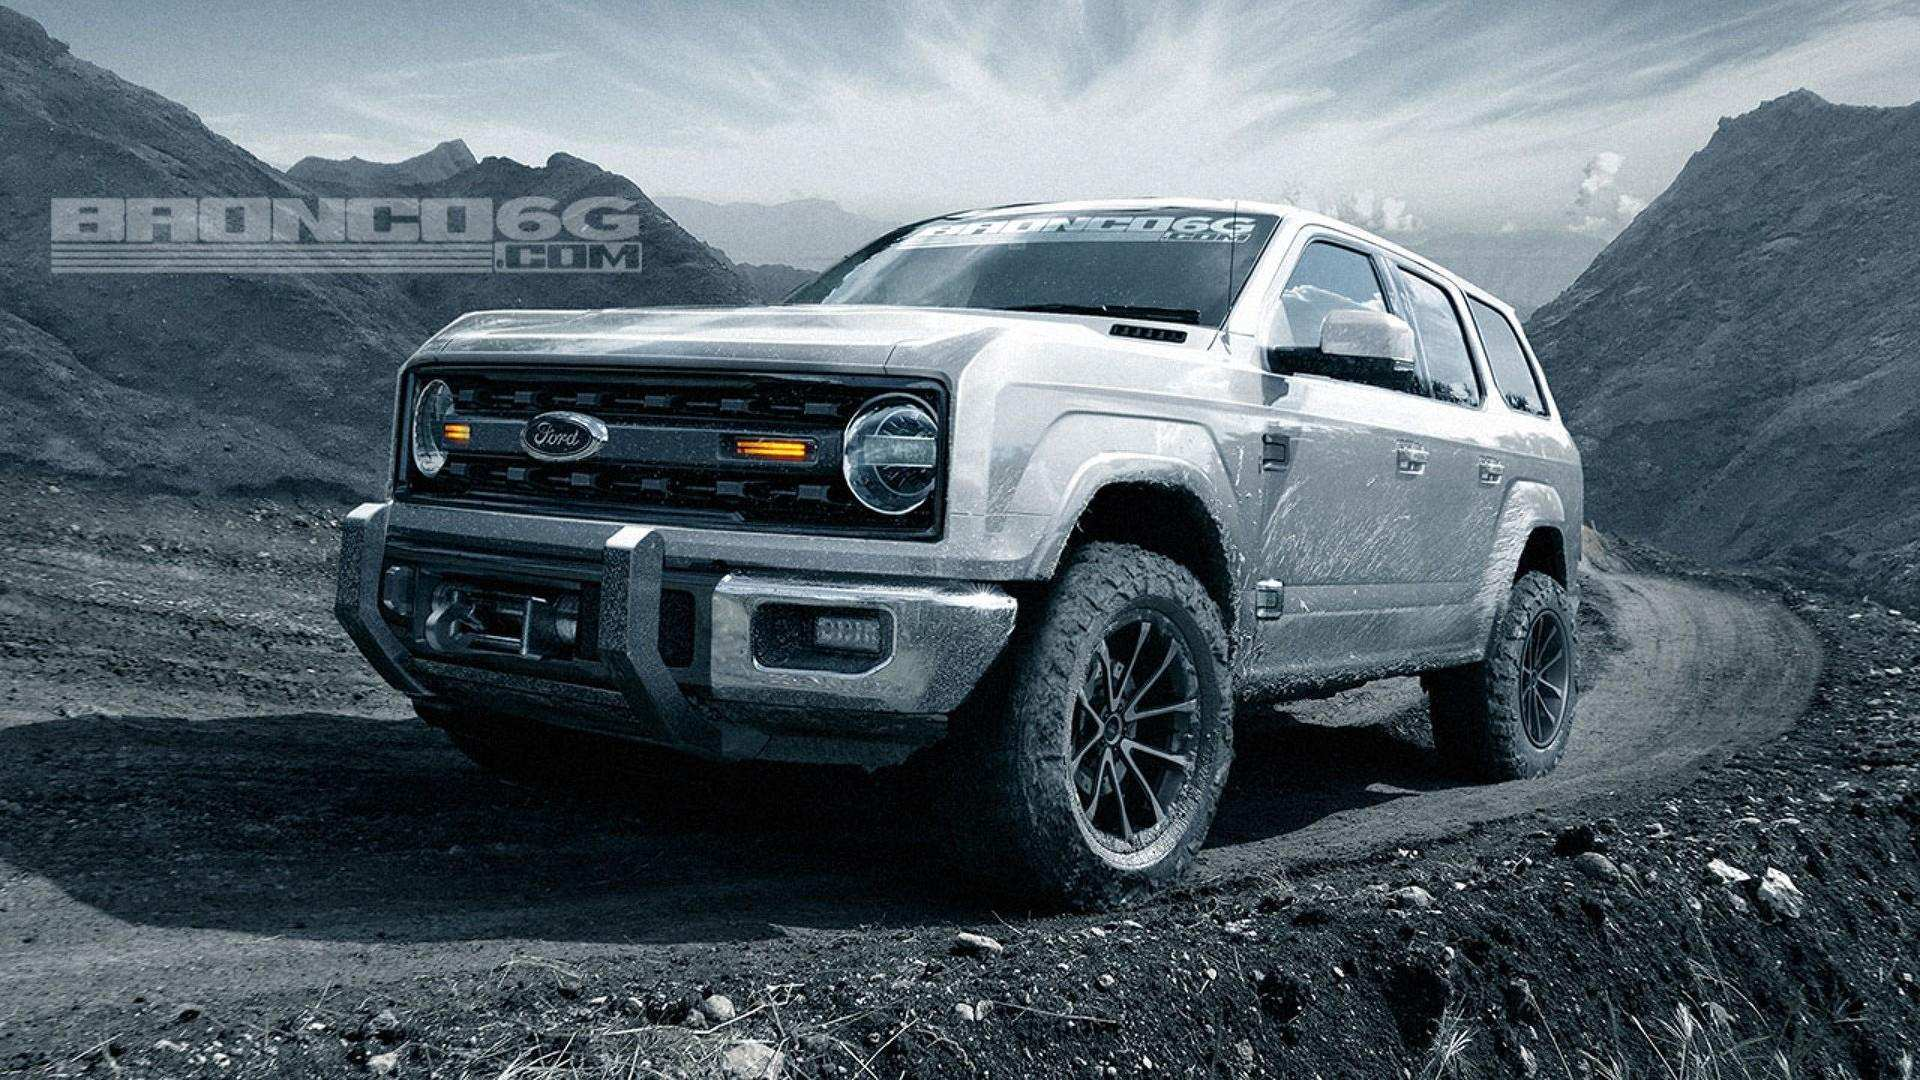 86 Great Price Of 2020 Ford Bronco Rumors by Price Of 2020 Ford Bronco